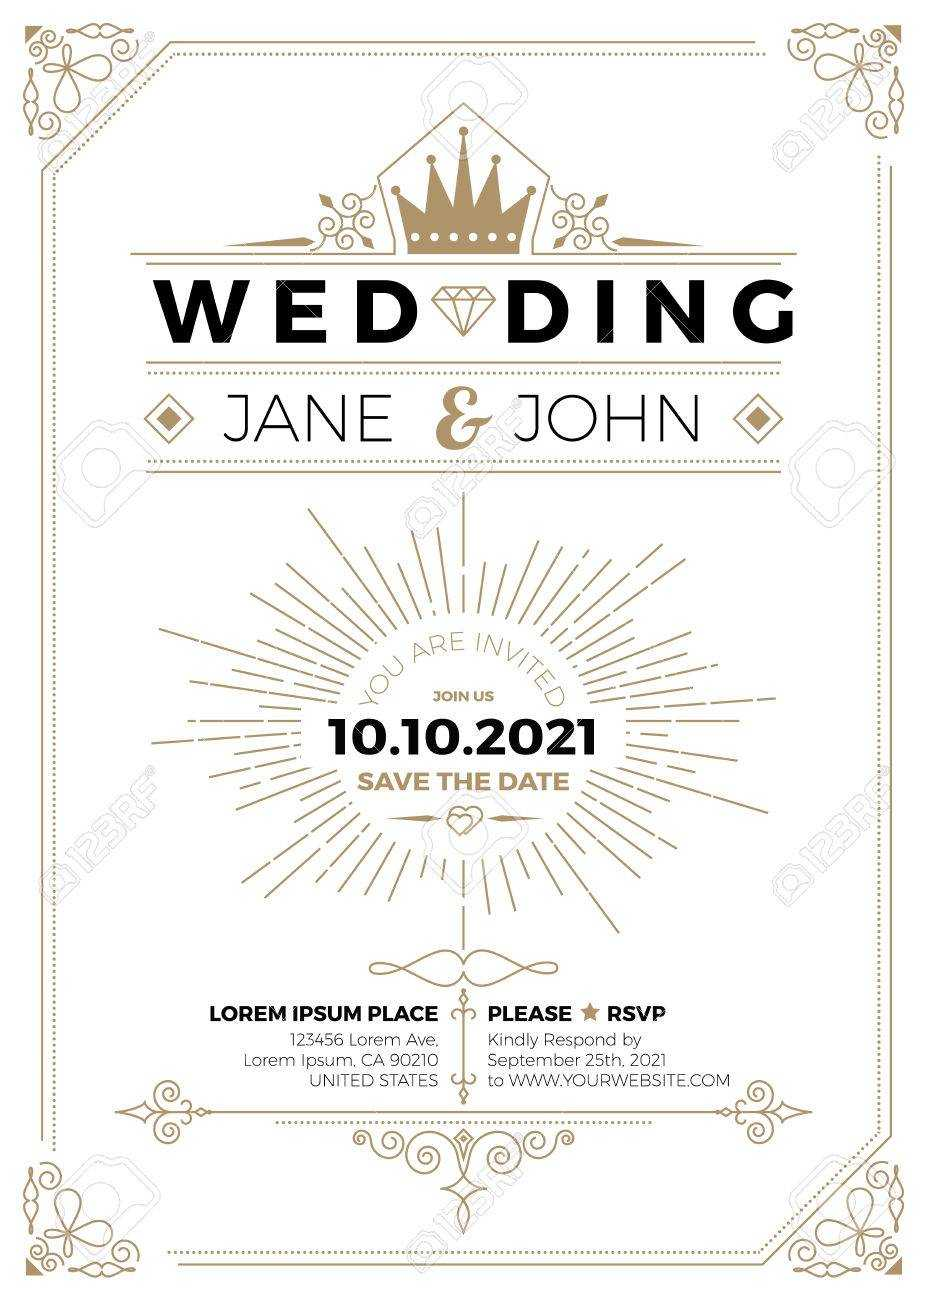 Vintage Wedding Invitation Card A5 Size Frame Layout Print Template With Wedding Card Size Template